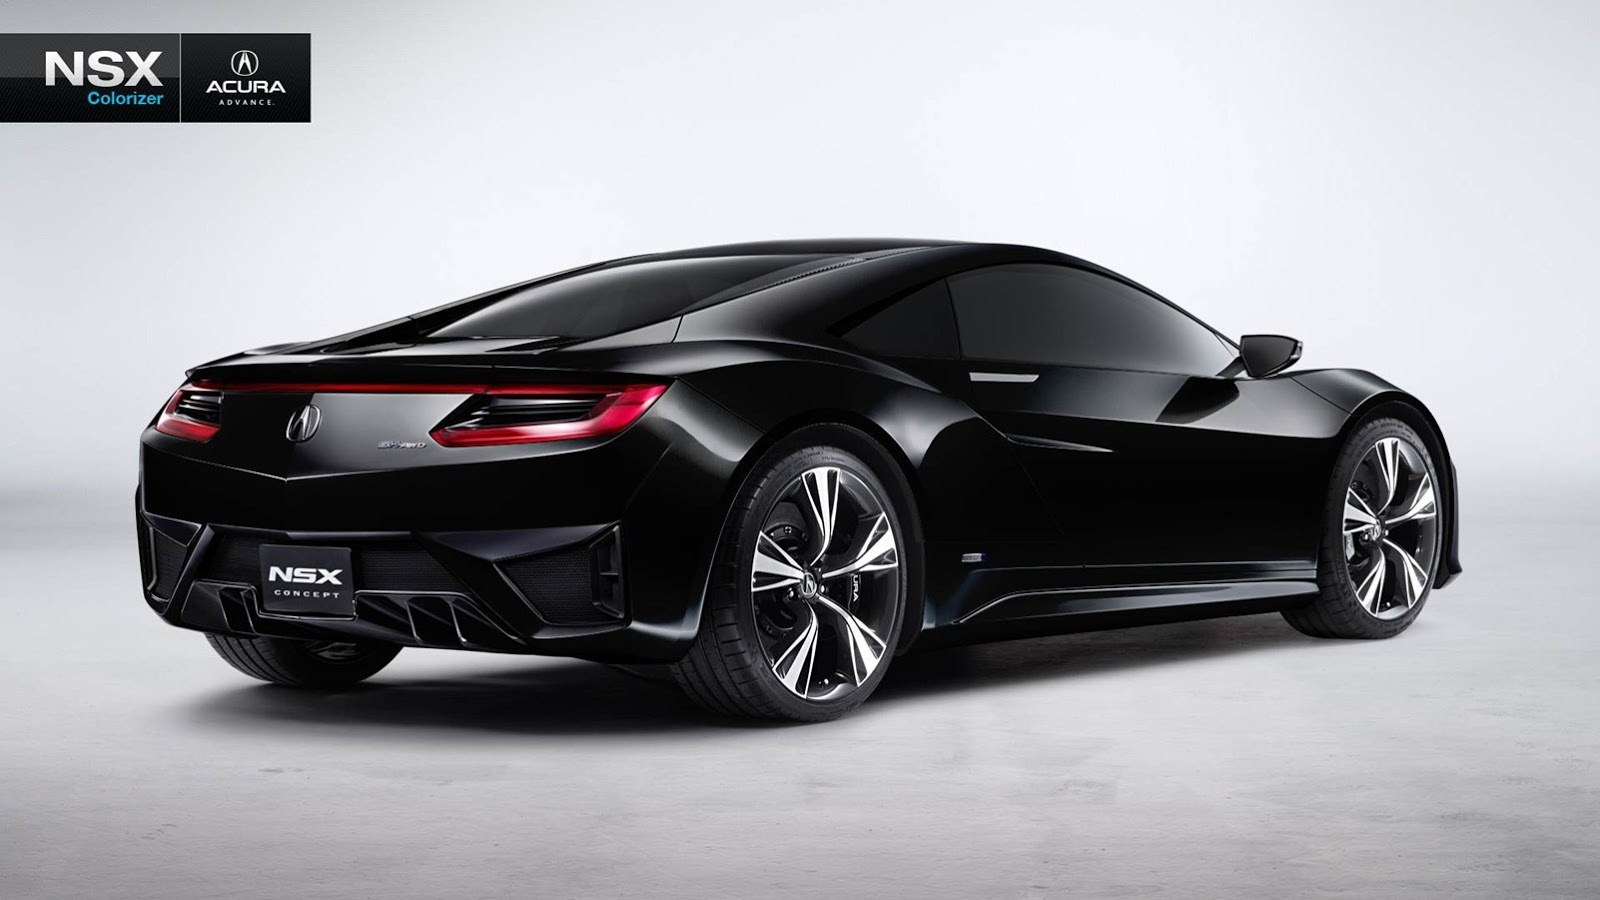 Upcoming 2016 Acura NSX